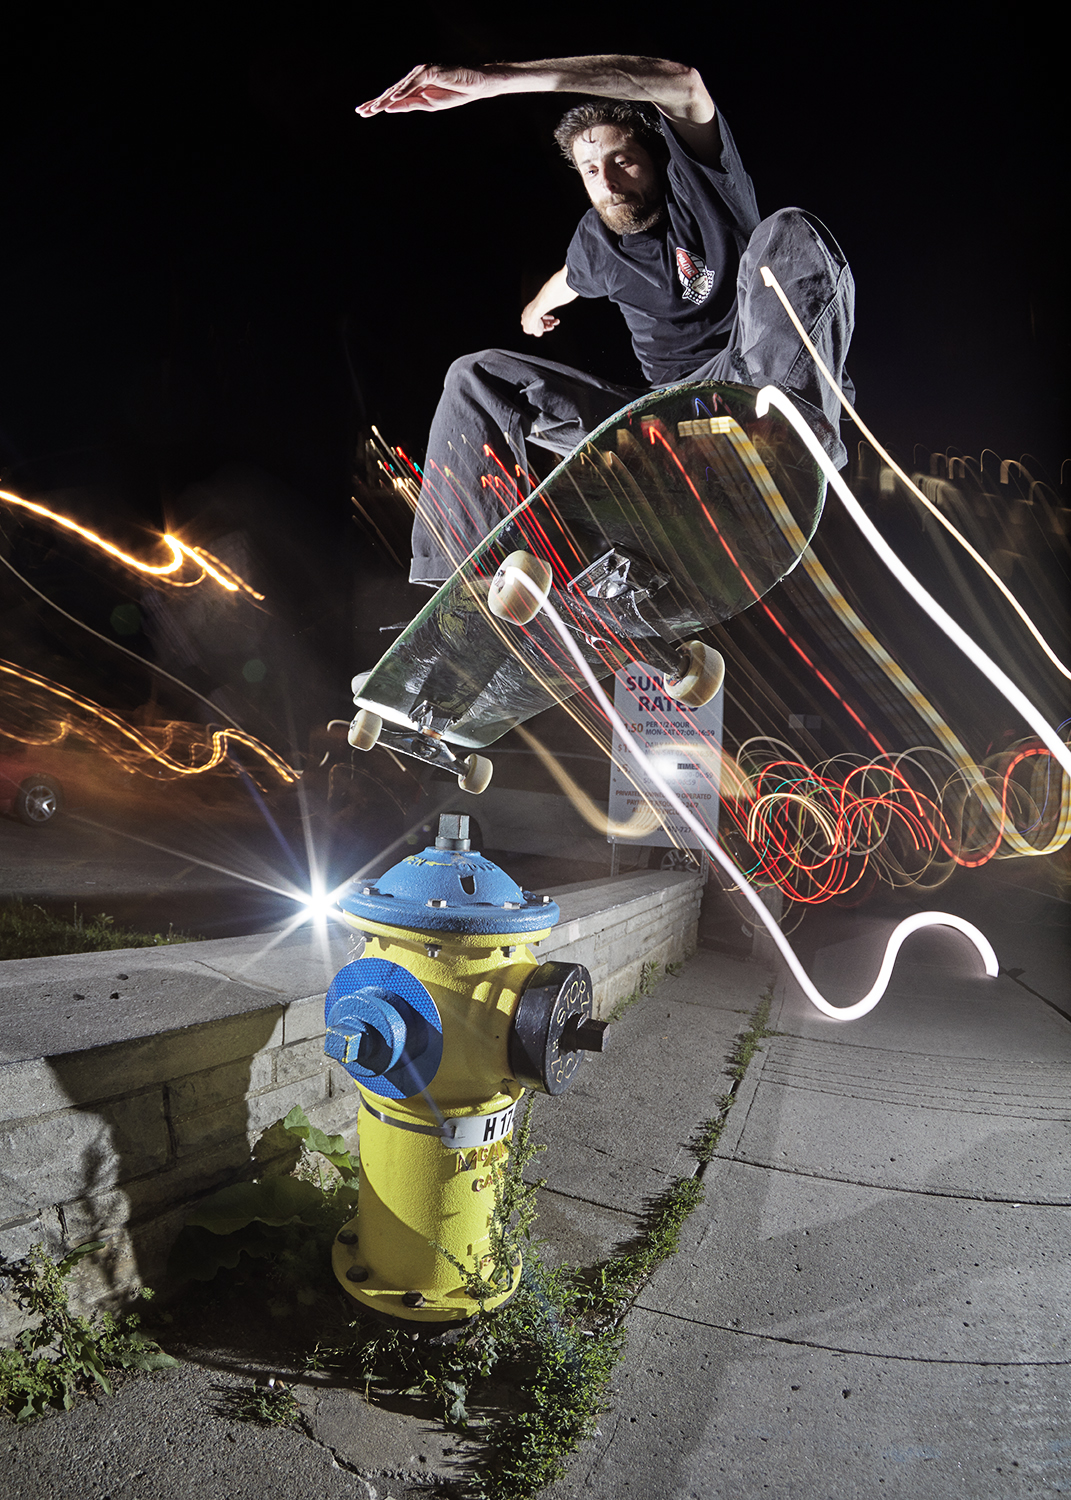 50-50 Ollie over the Hydrant - Photo: Will Jivcoff